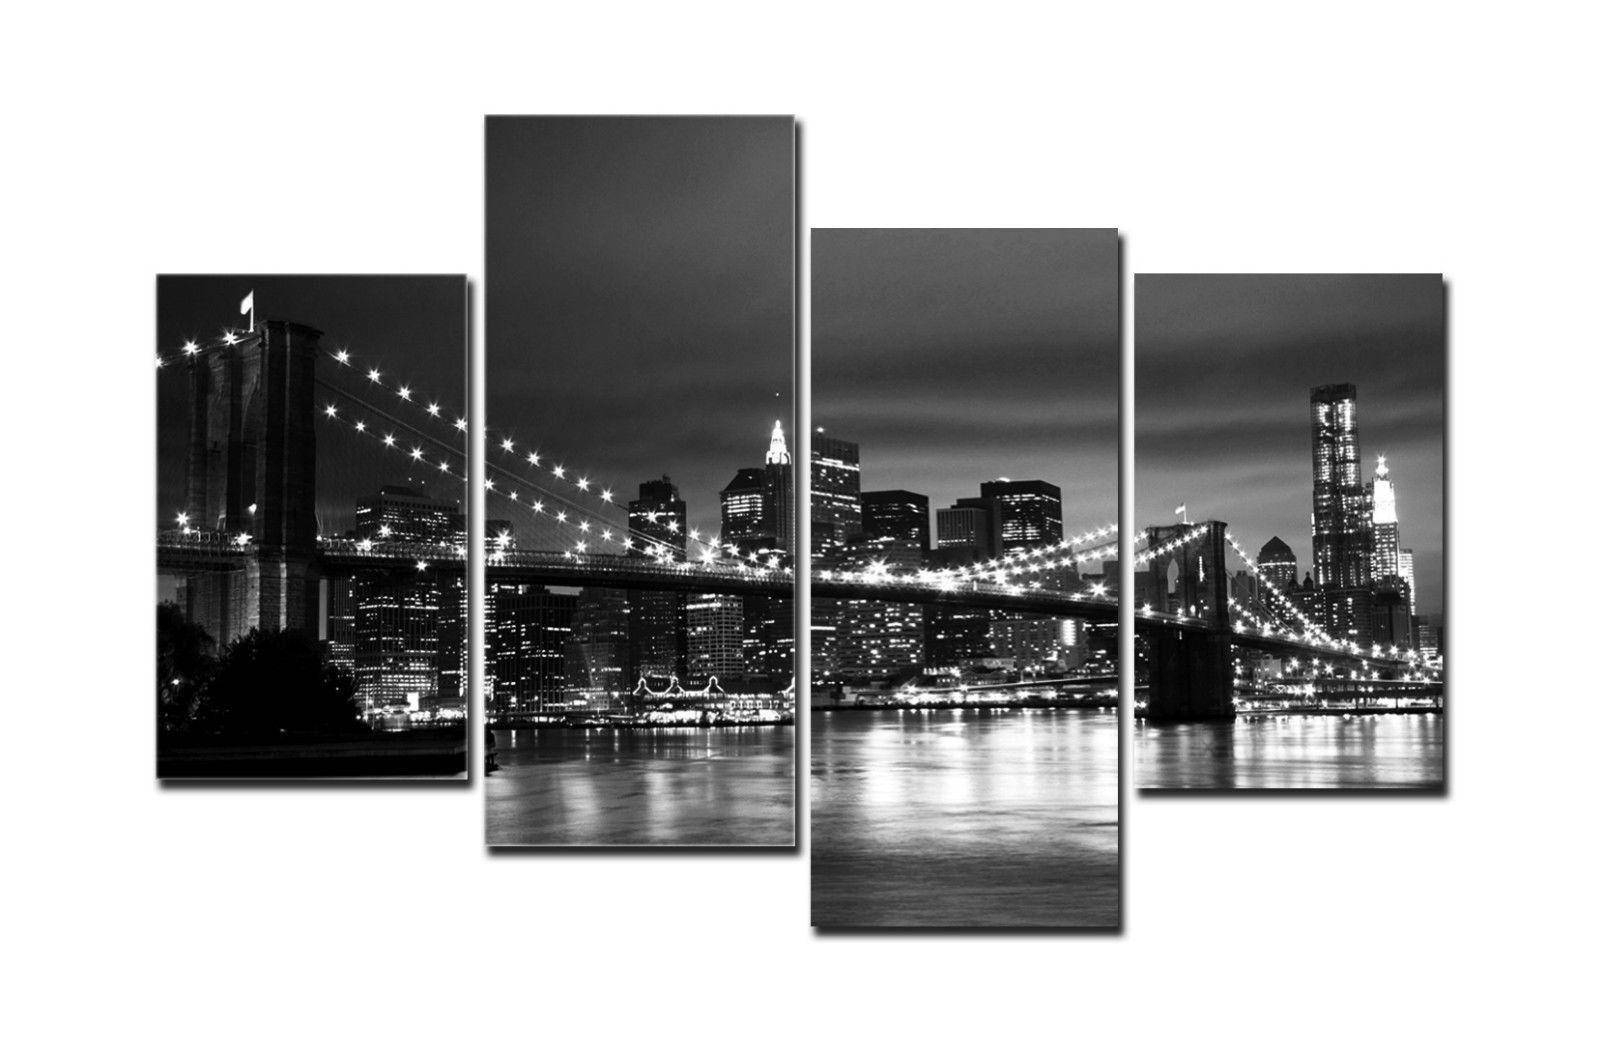 2018 Hd Canvas Print Home Decor Wall Art Painting New York Bridge Inside Recent Black And White New York Canvas Wall Art (View 17 of 20)